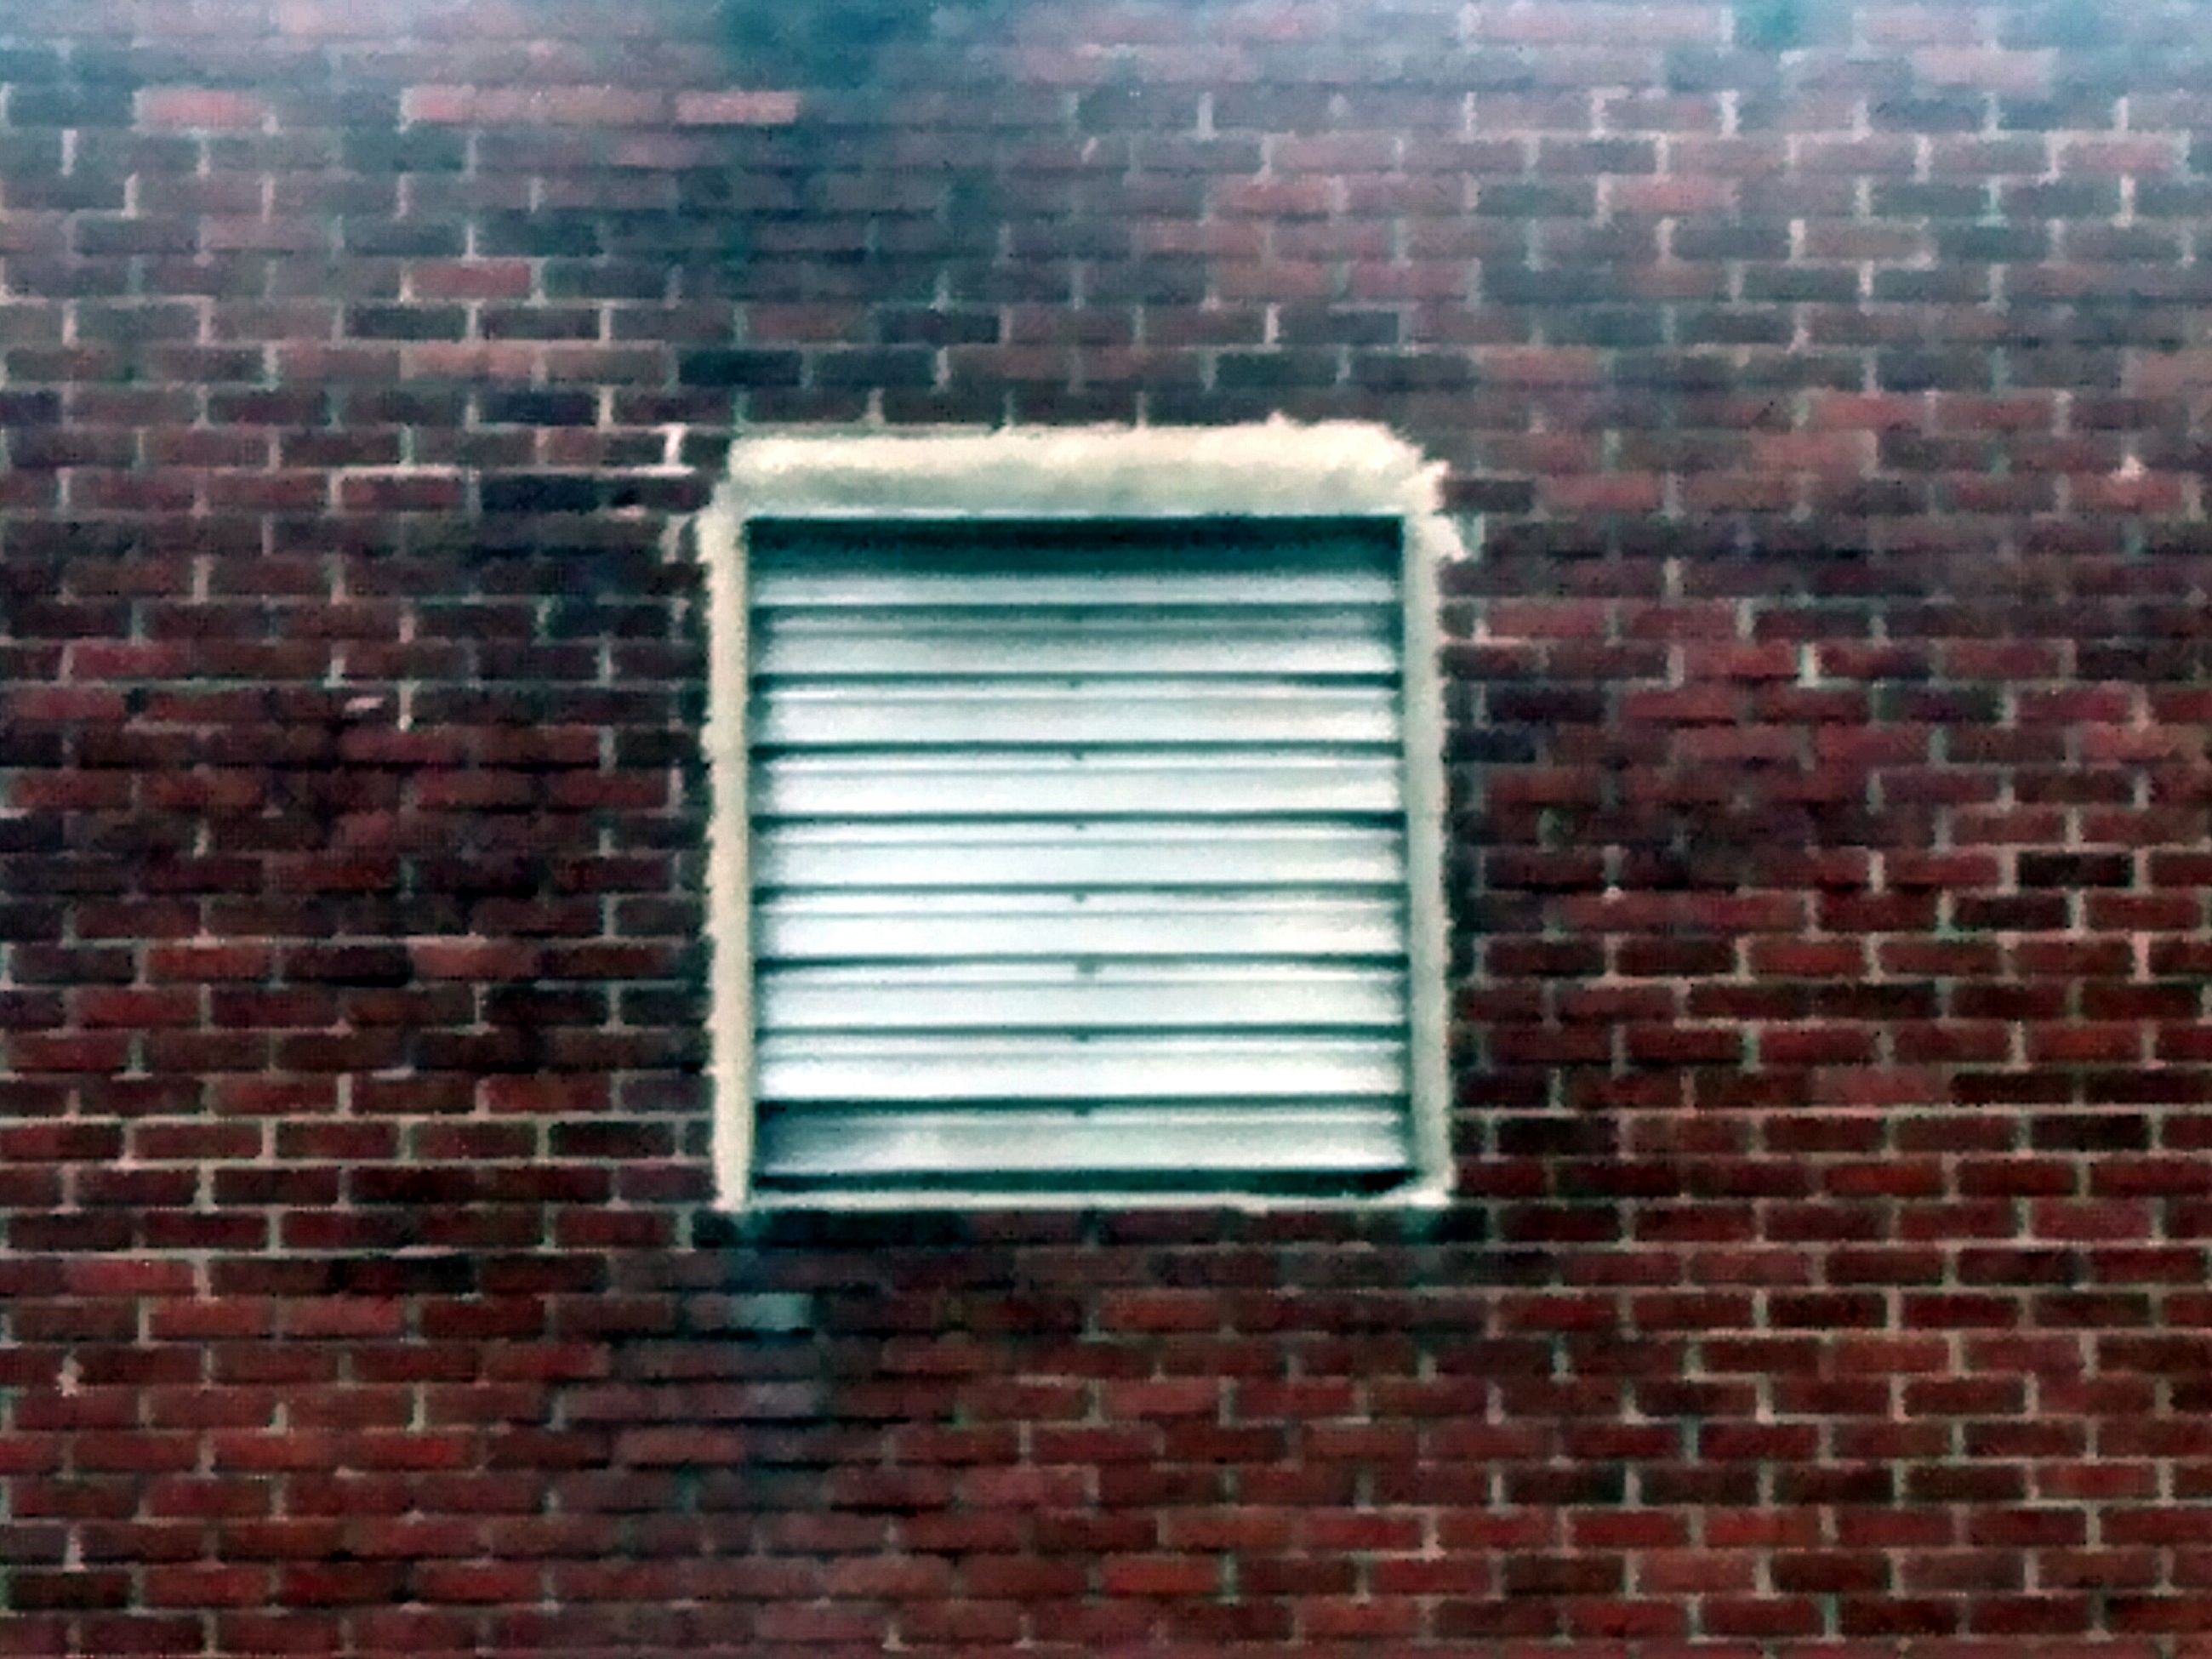 architecture, built structure, brick wall, red, building exterior, window, wall - building feature, closed, wall, house, no people, day, blue, outdoors, close-up, door, simplicity, pattern, safety, geometric shape